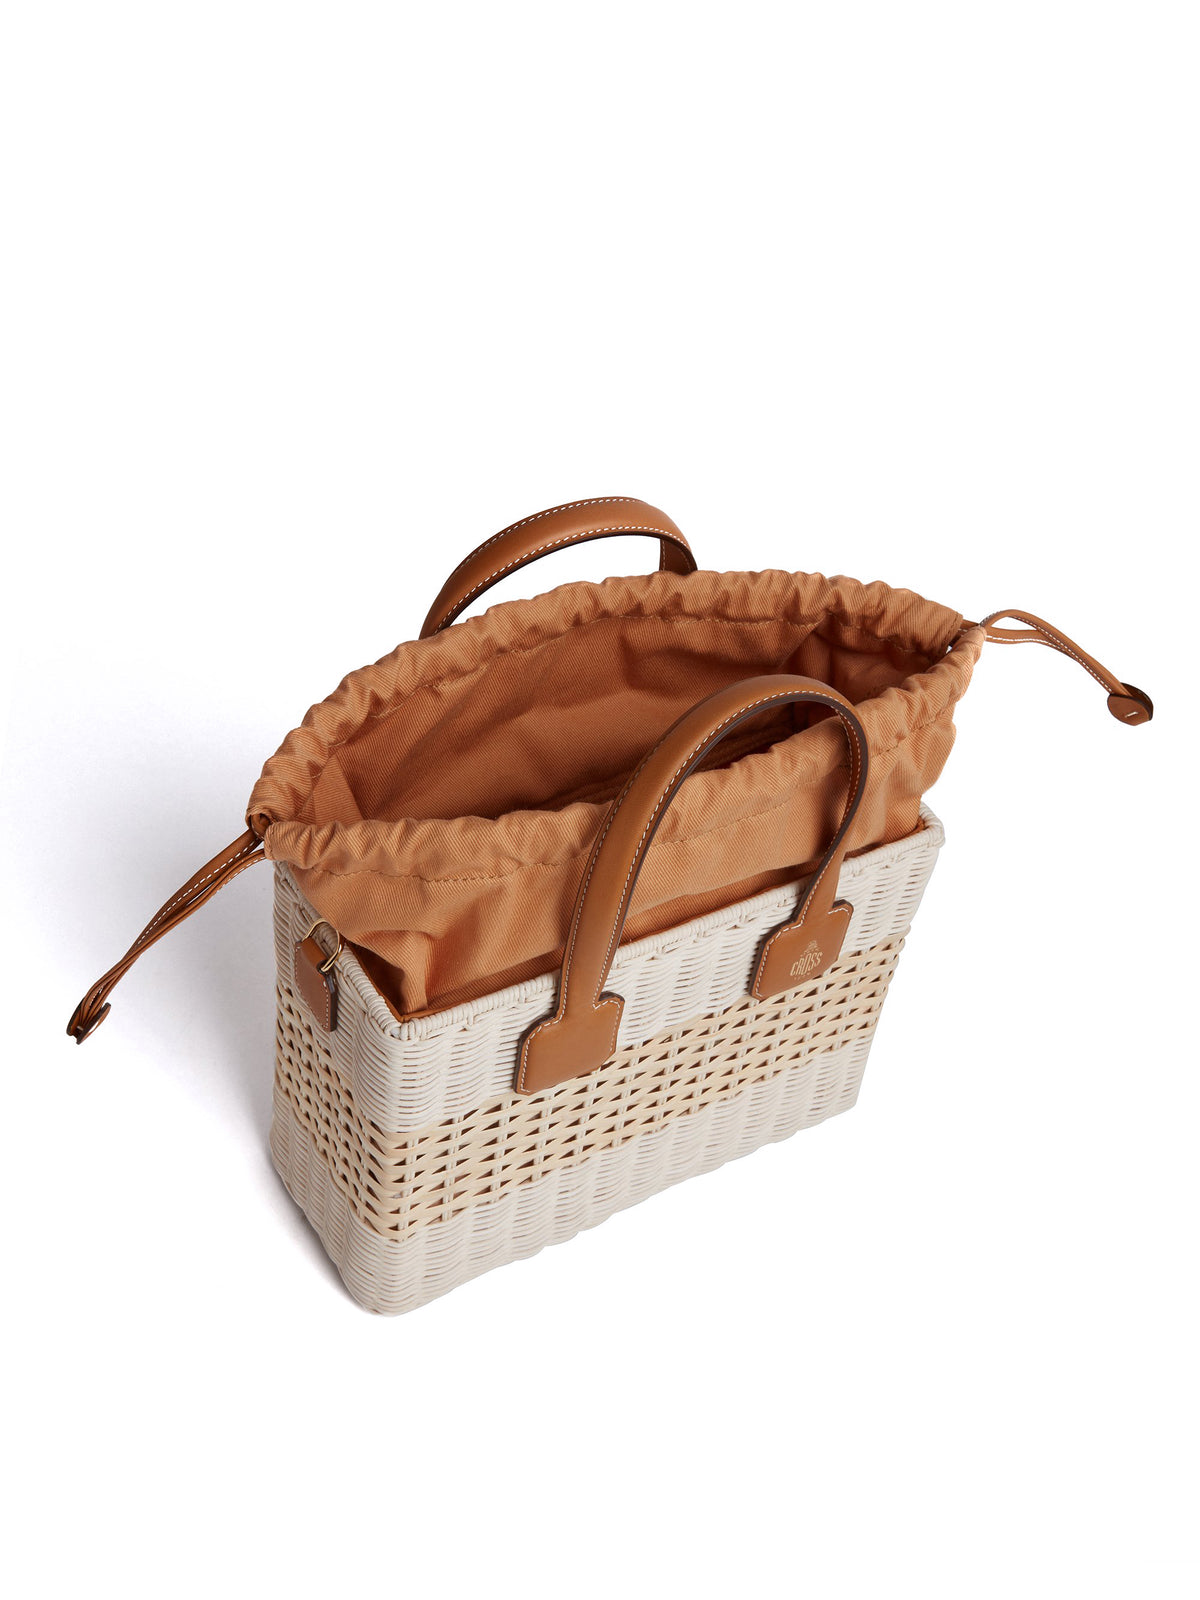 Manray Rattan & Leather Tote Bag Soft Calf Luggage / Bleach Rattan Inside